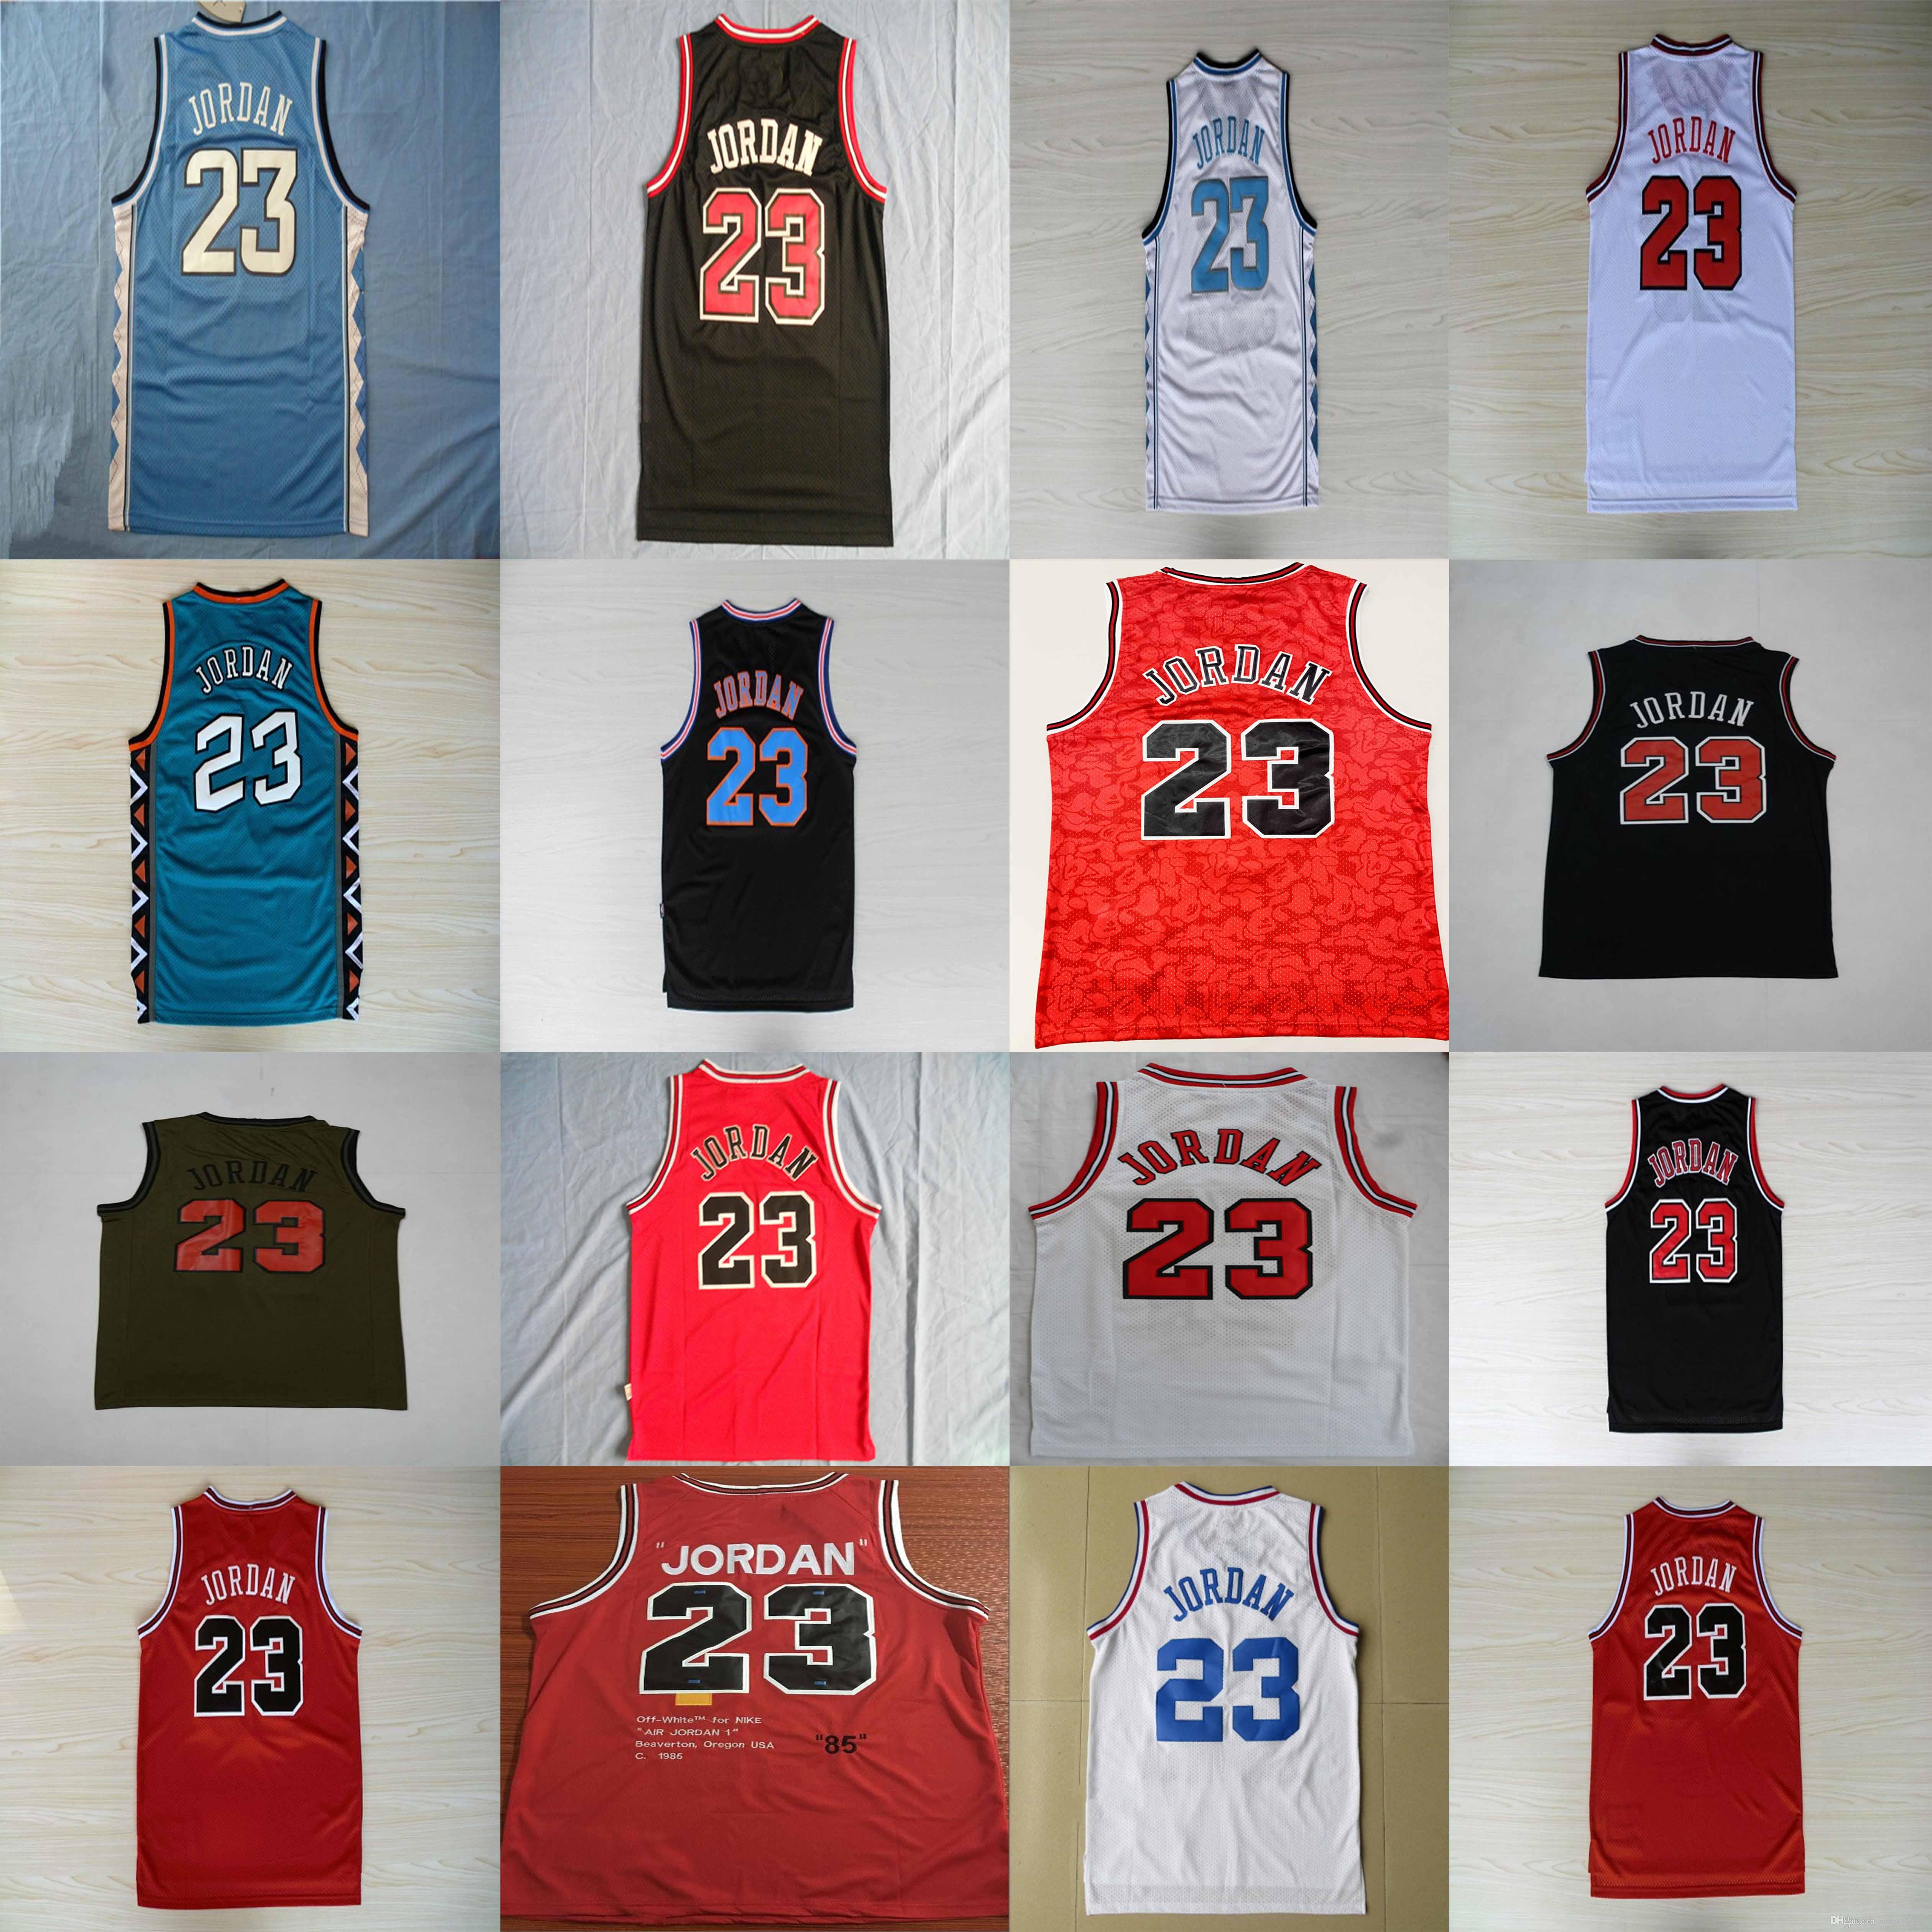 new styles 0f113 27f1a Men's NCAA North Carolina Tar Heels Jersey 23 Michael Jersey Space Jam Tune  Squad Stitched Basketball Jerseys S-XXL